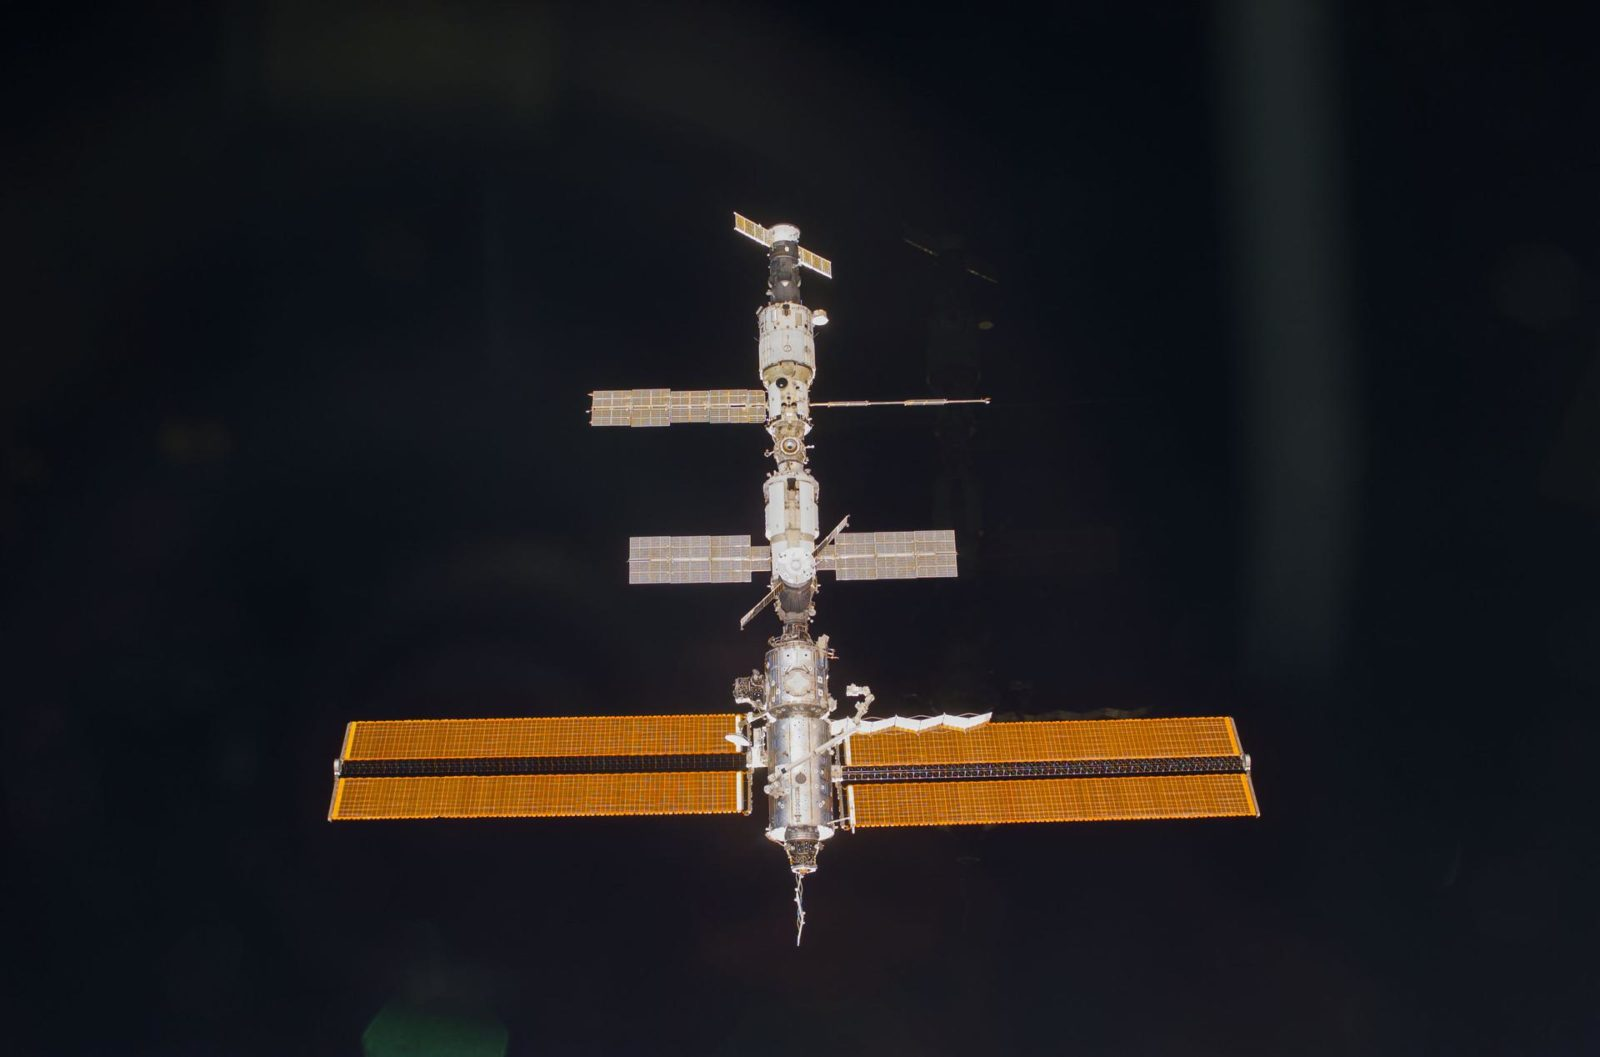 Approach view of the ISS